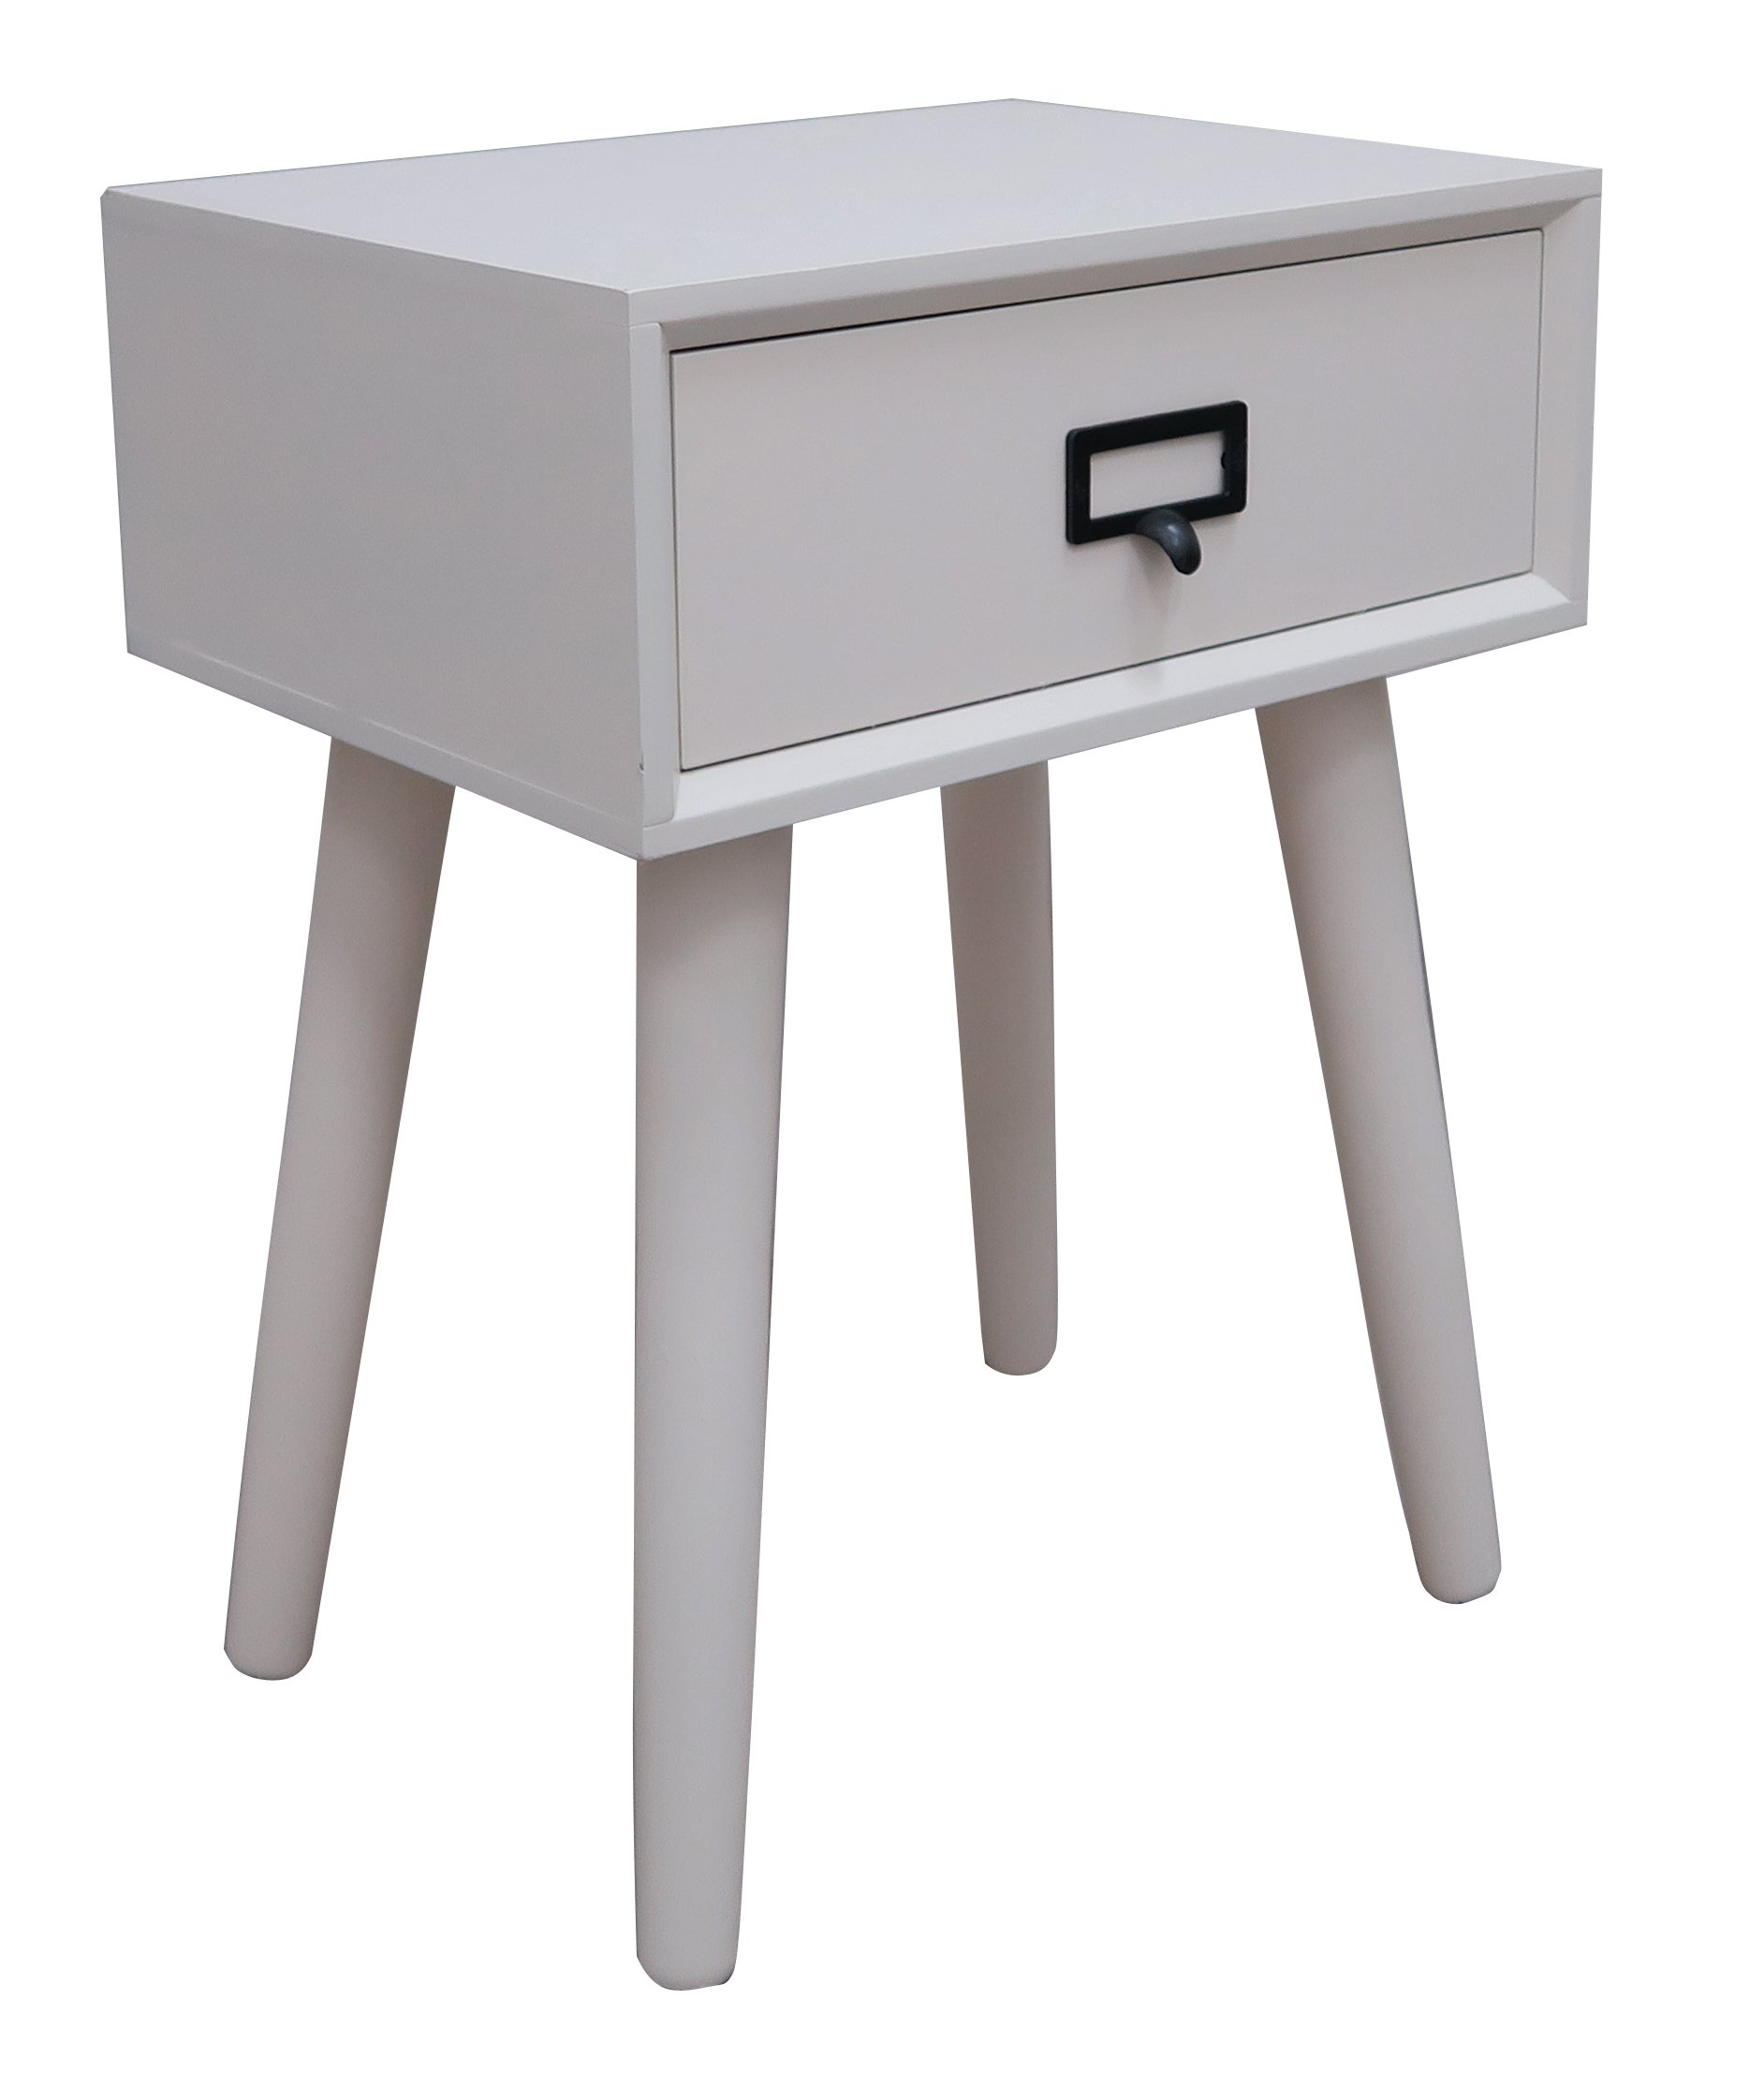 "Urbanest Hartford One Drawer Side Table, Cream - Urbanest wood side table with one drawer in a cream finish. Measurements: 15 3/4"" long, 12"" wide, and 21"" tall. Solid wood with a wood veneer top. Hand applied cream finish. Handle is metal. - living-room-furniture, living-room, end-tables - 71gcDewSMcL -"